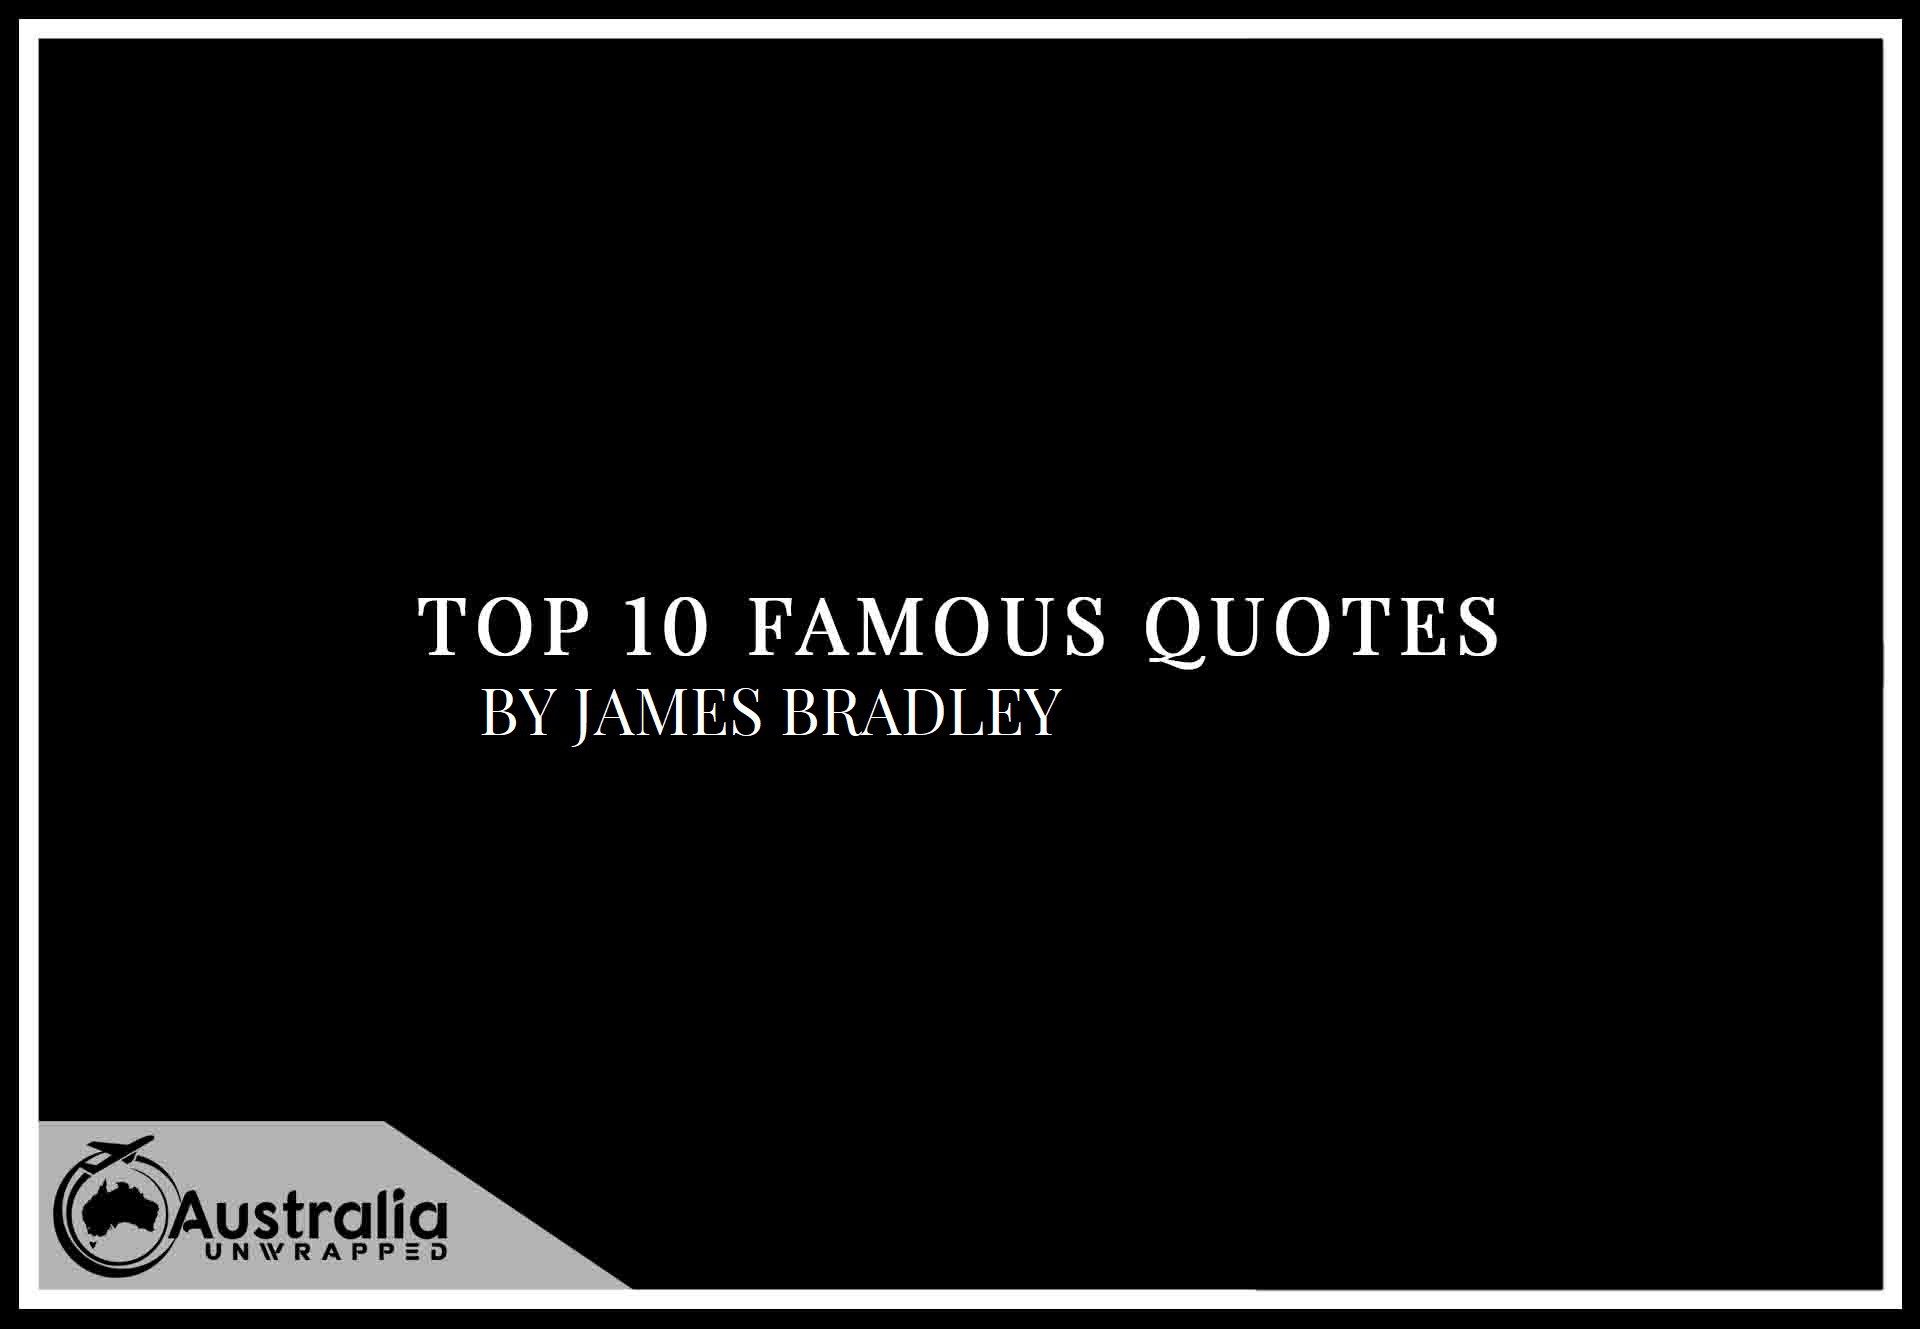 Top 10 Famous Quotes by Author james bradley